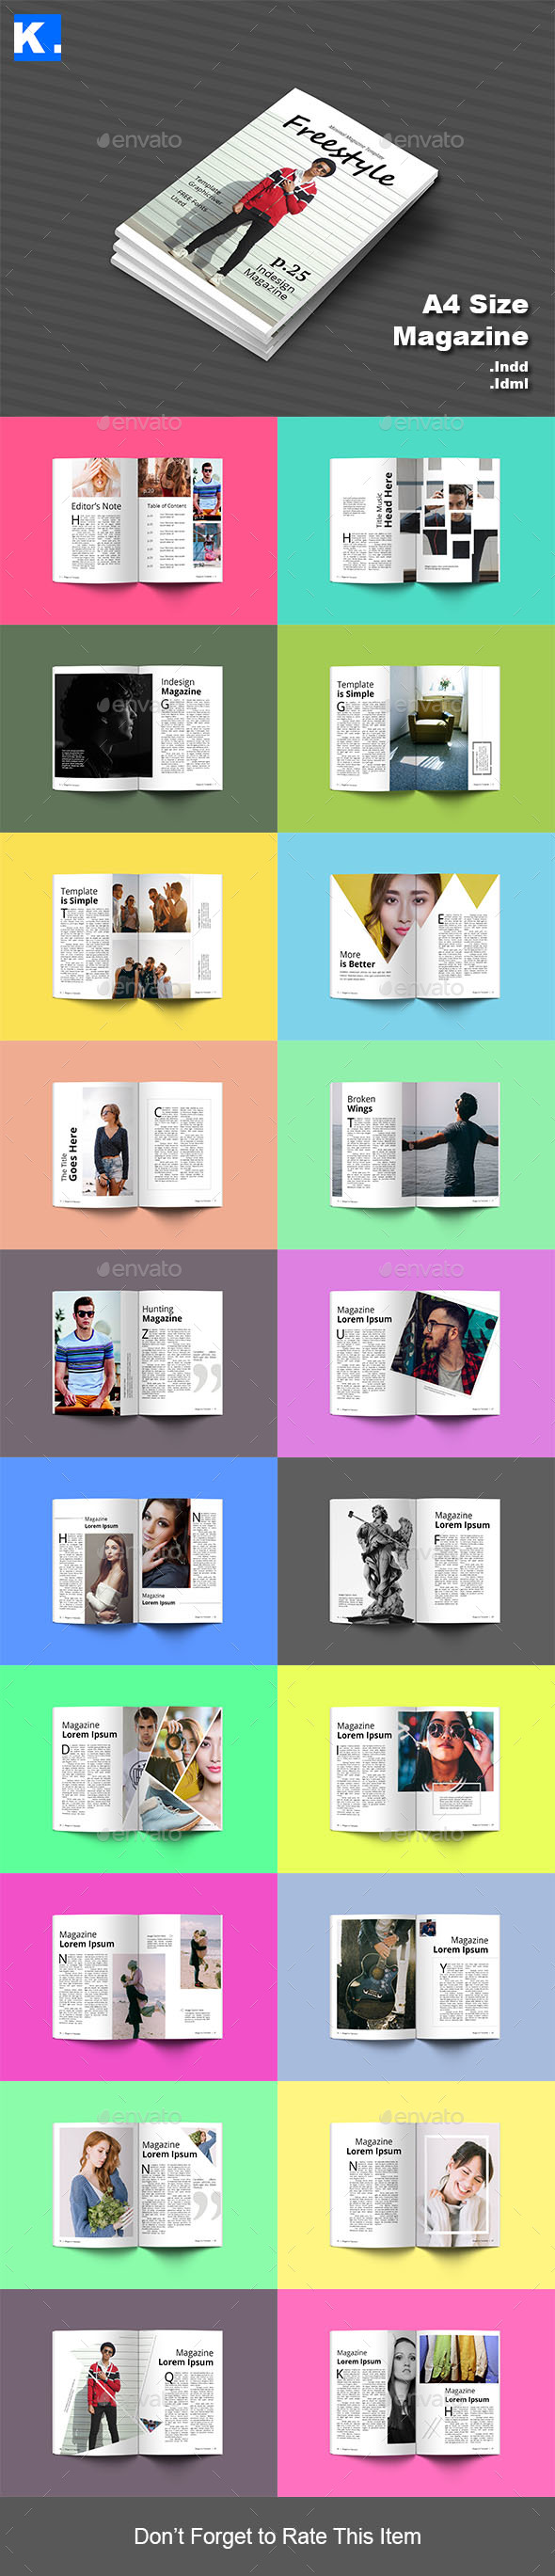 GraphicRiver Indesign Magazine Template 7 21195665